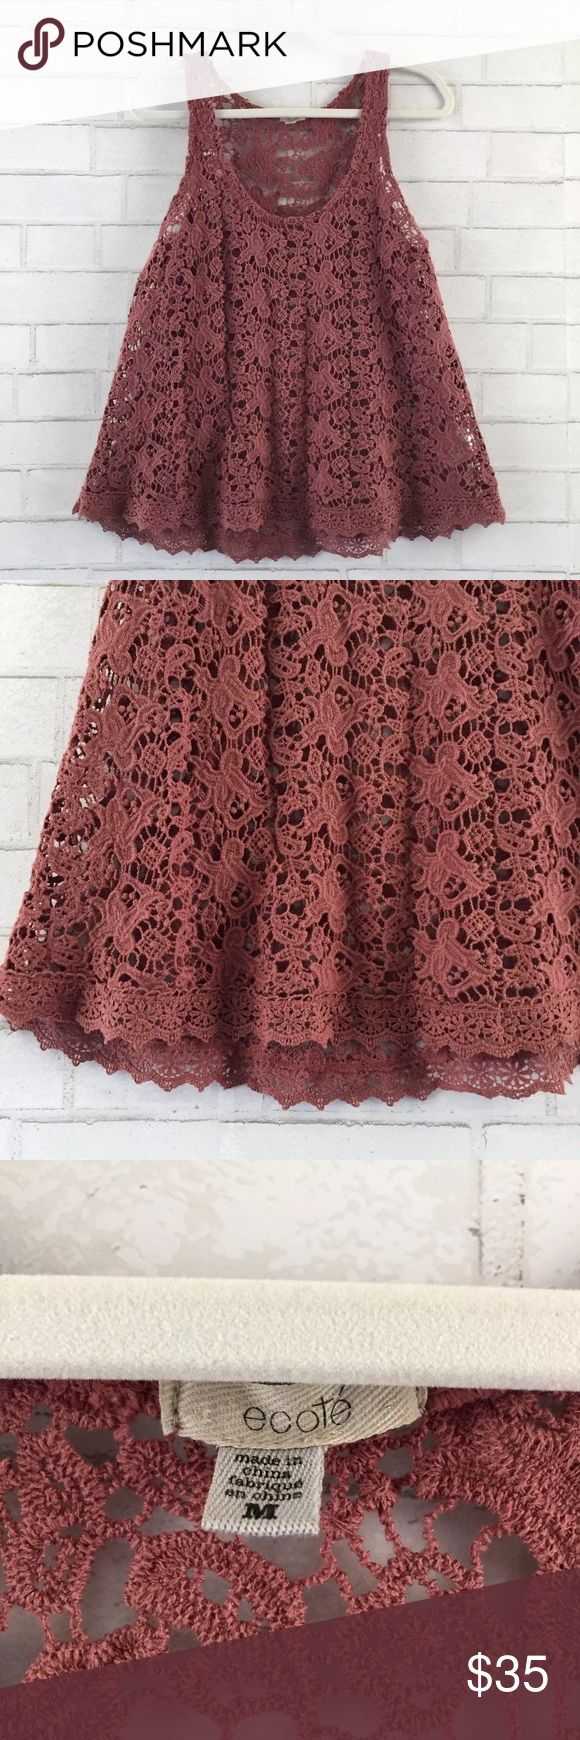 [Ecote] Urban Outfitters Lace Crochet Tank Urban Outfitters Ecote Tank Top, Size Medium. Pre-owned, good condition! No tears, rips, or stains! Quickly buy now before it's gone! Color variation depends on screen and lighting.  Please ask if you have any other questions! Ecote Tops Tank Tops